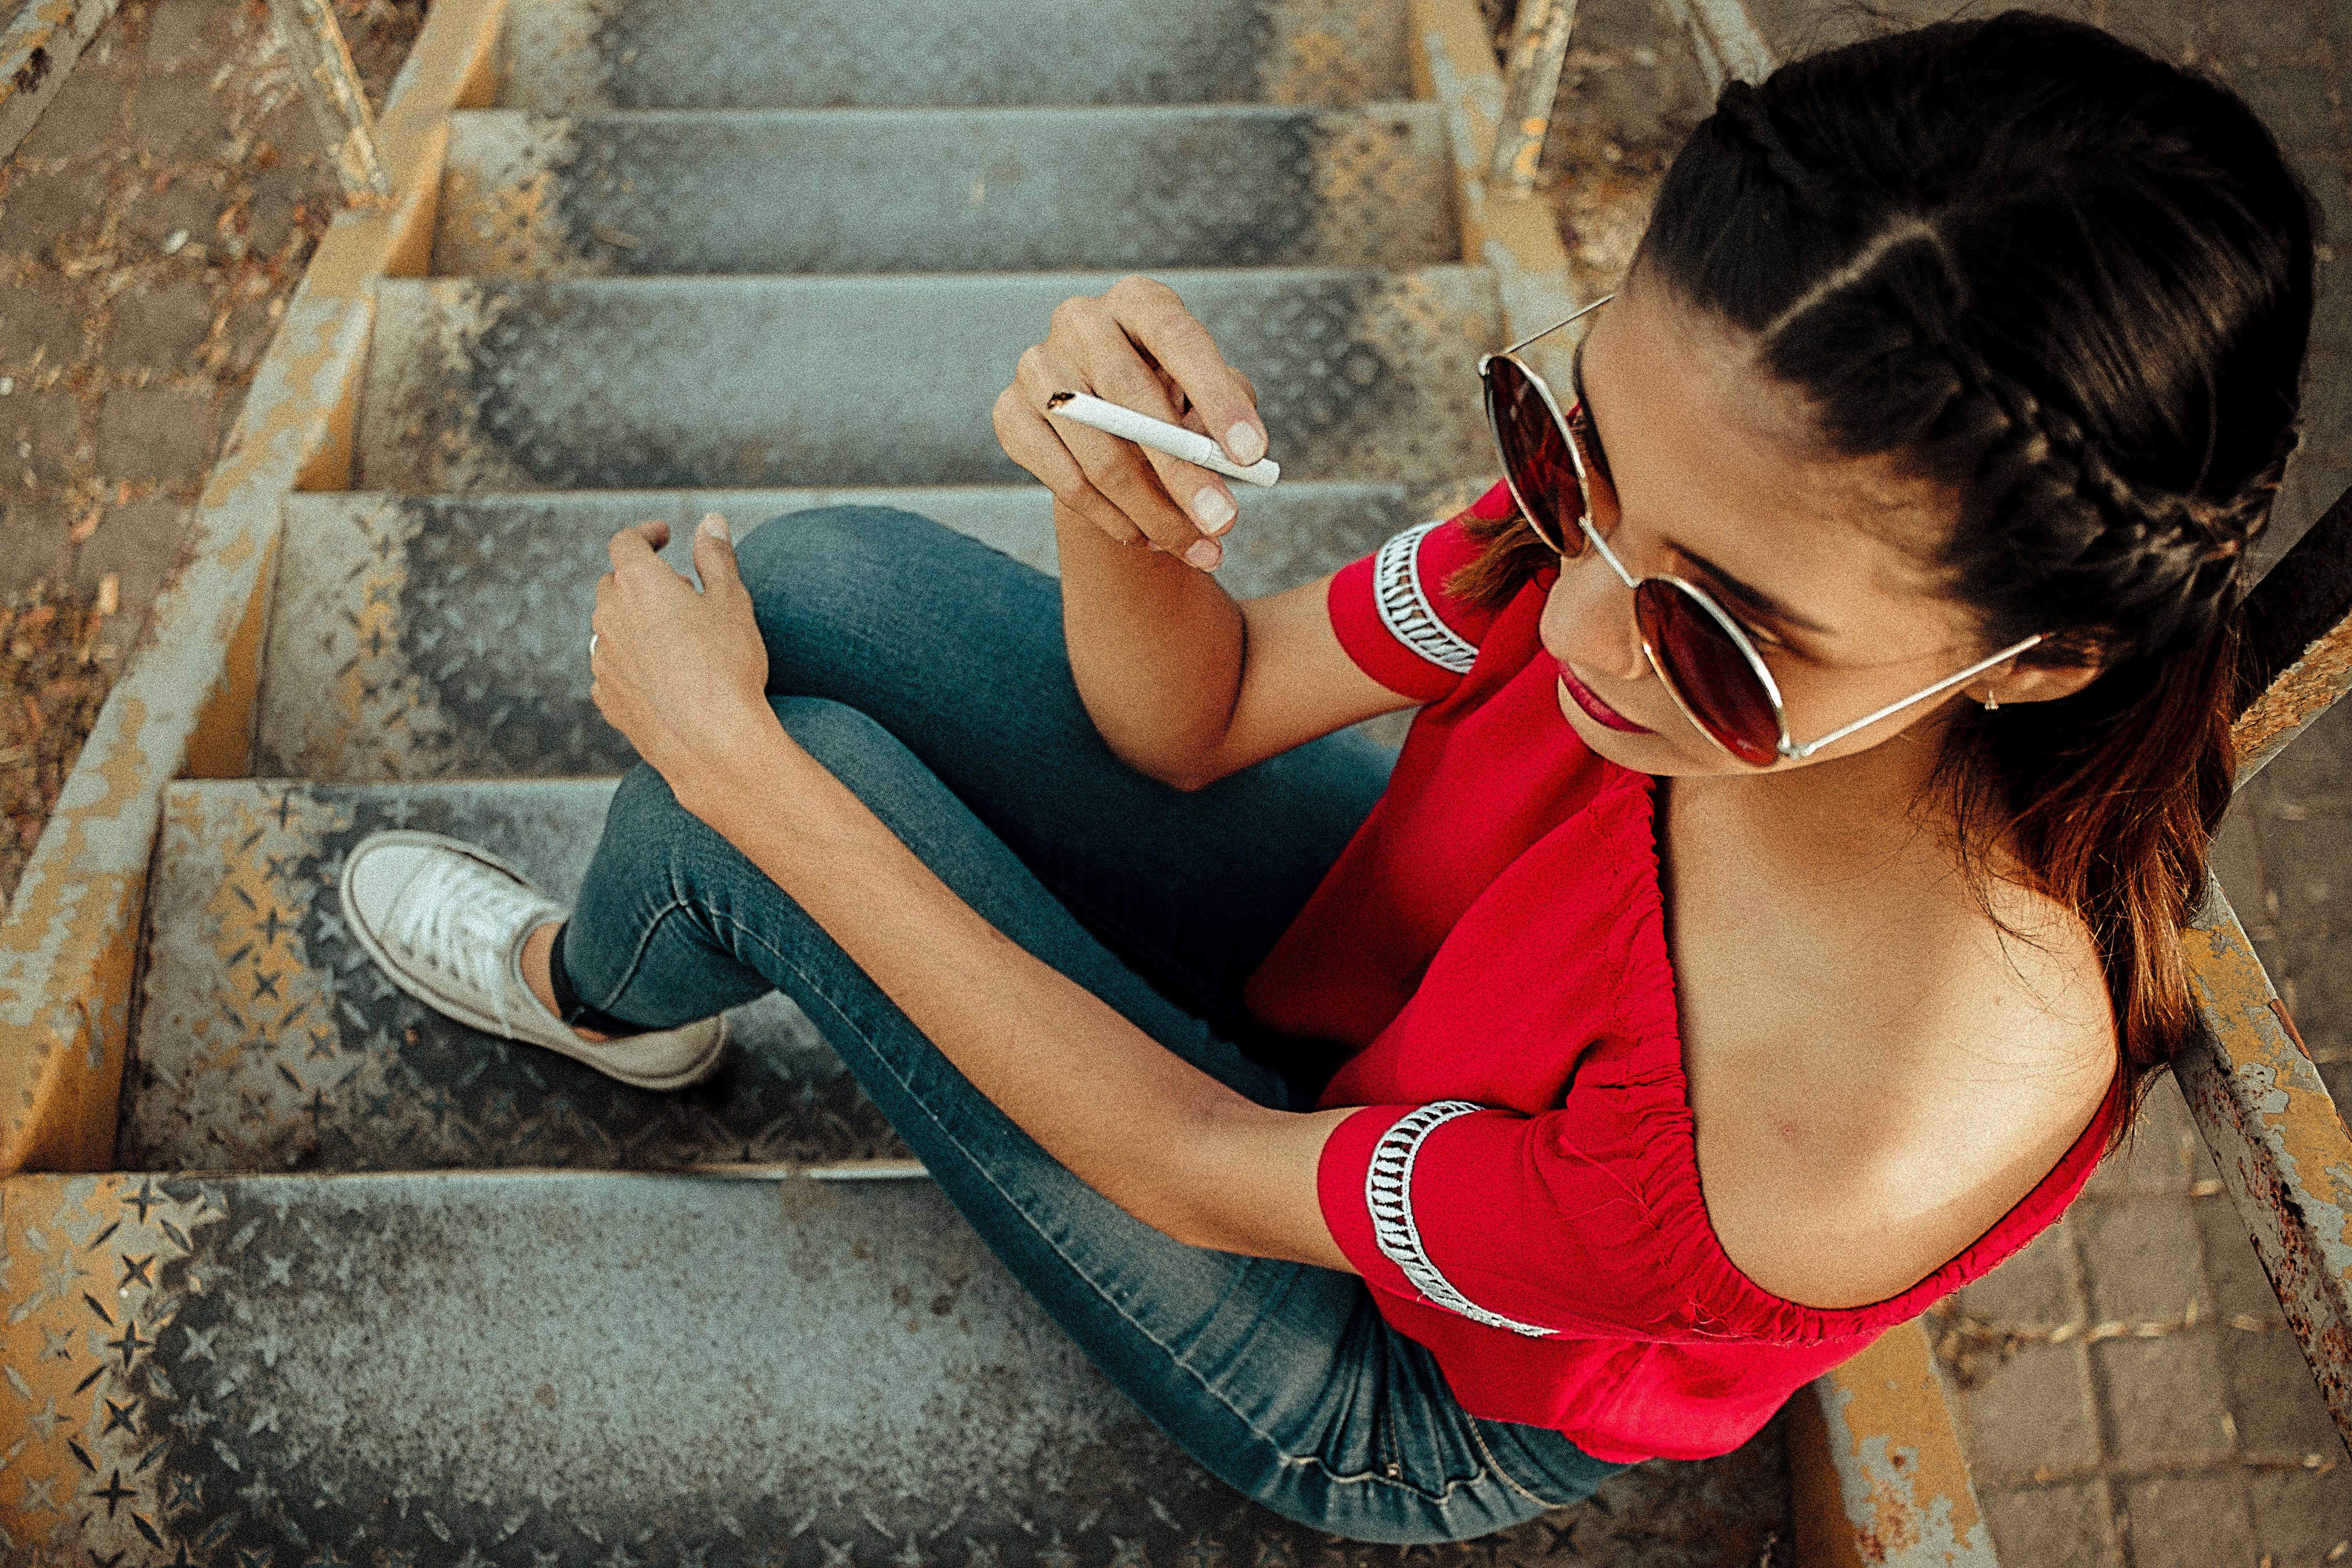 Woman Holding Cigarette Sitting on Stairs